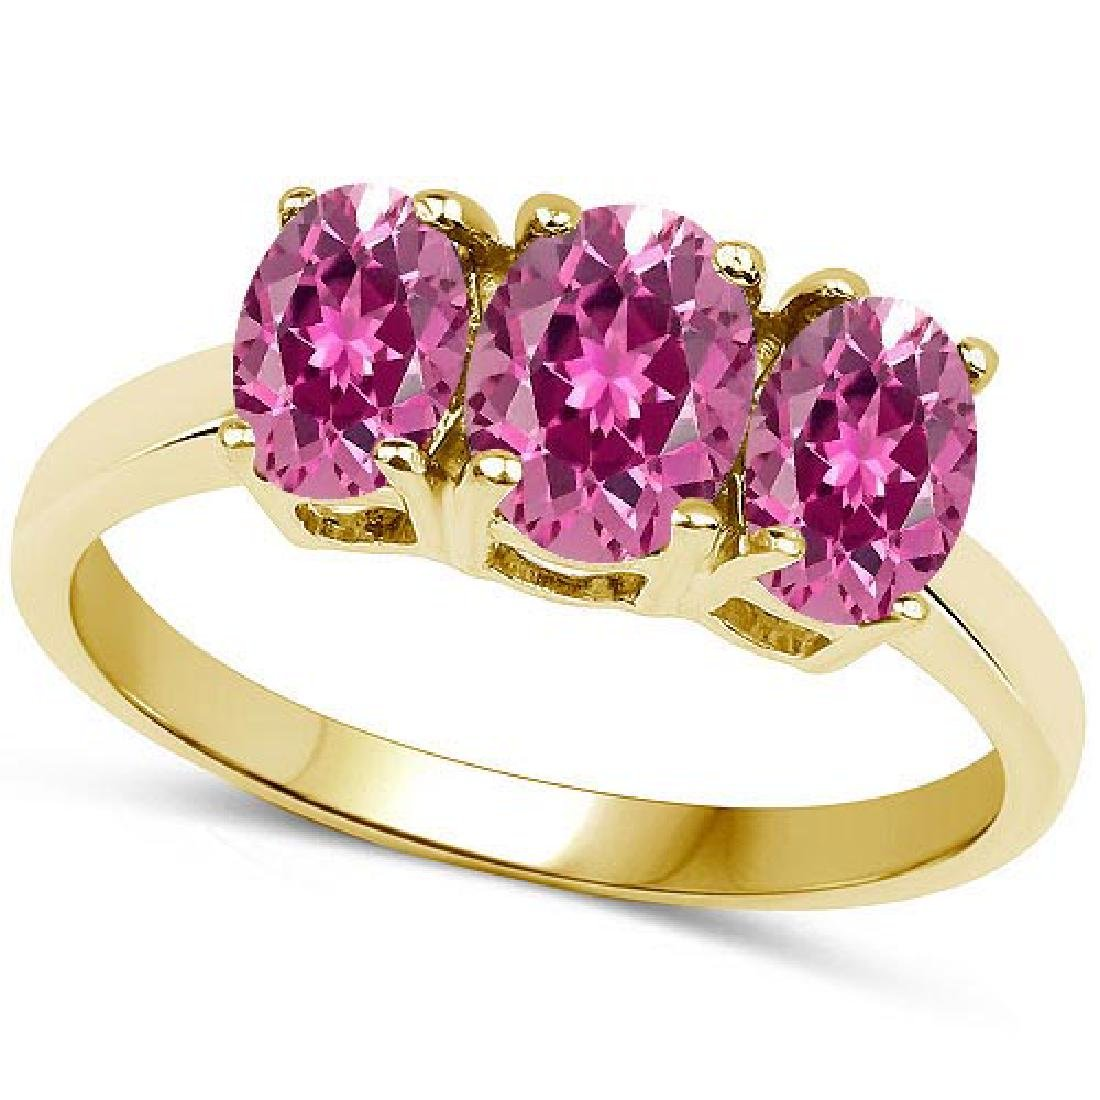 Certified 4.20 CTW Genuine pink tourmaline And 14K Yell